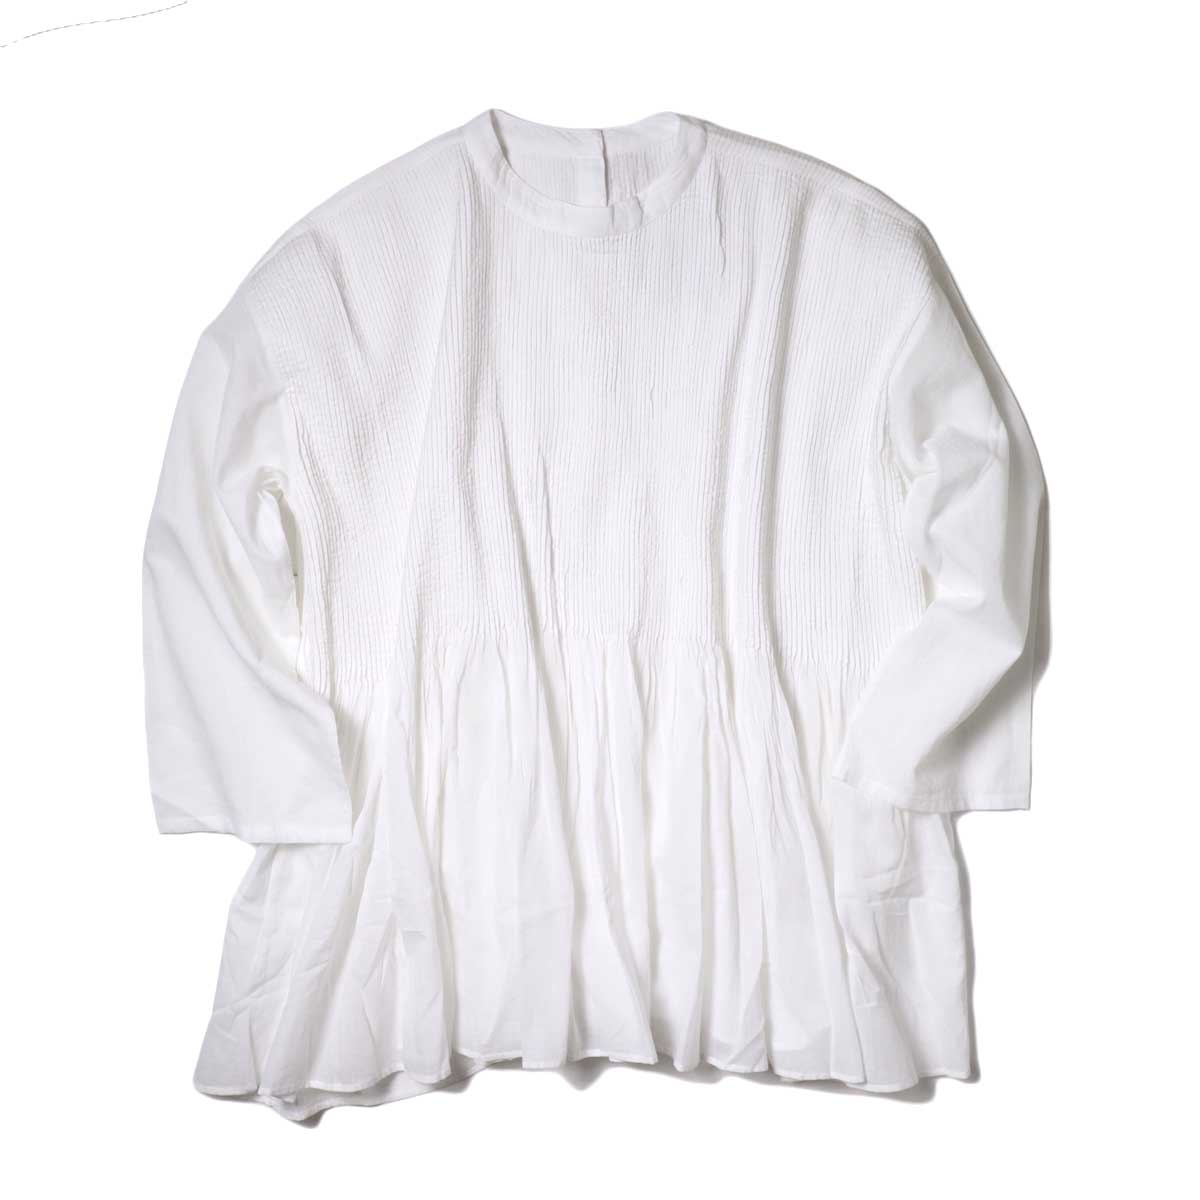 maison de soil / BACK OPENING STAND COLLAR SHIRT WITH MINI PINTUCK (White)